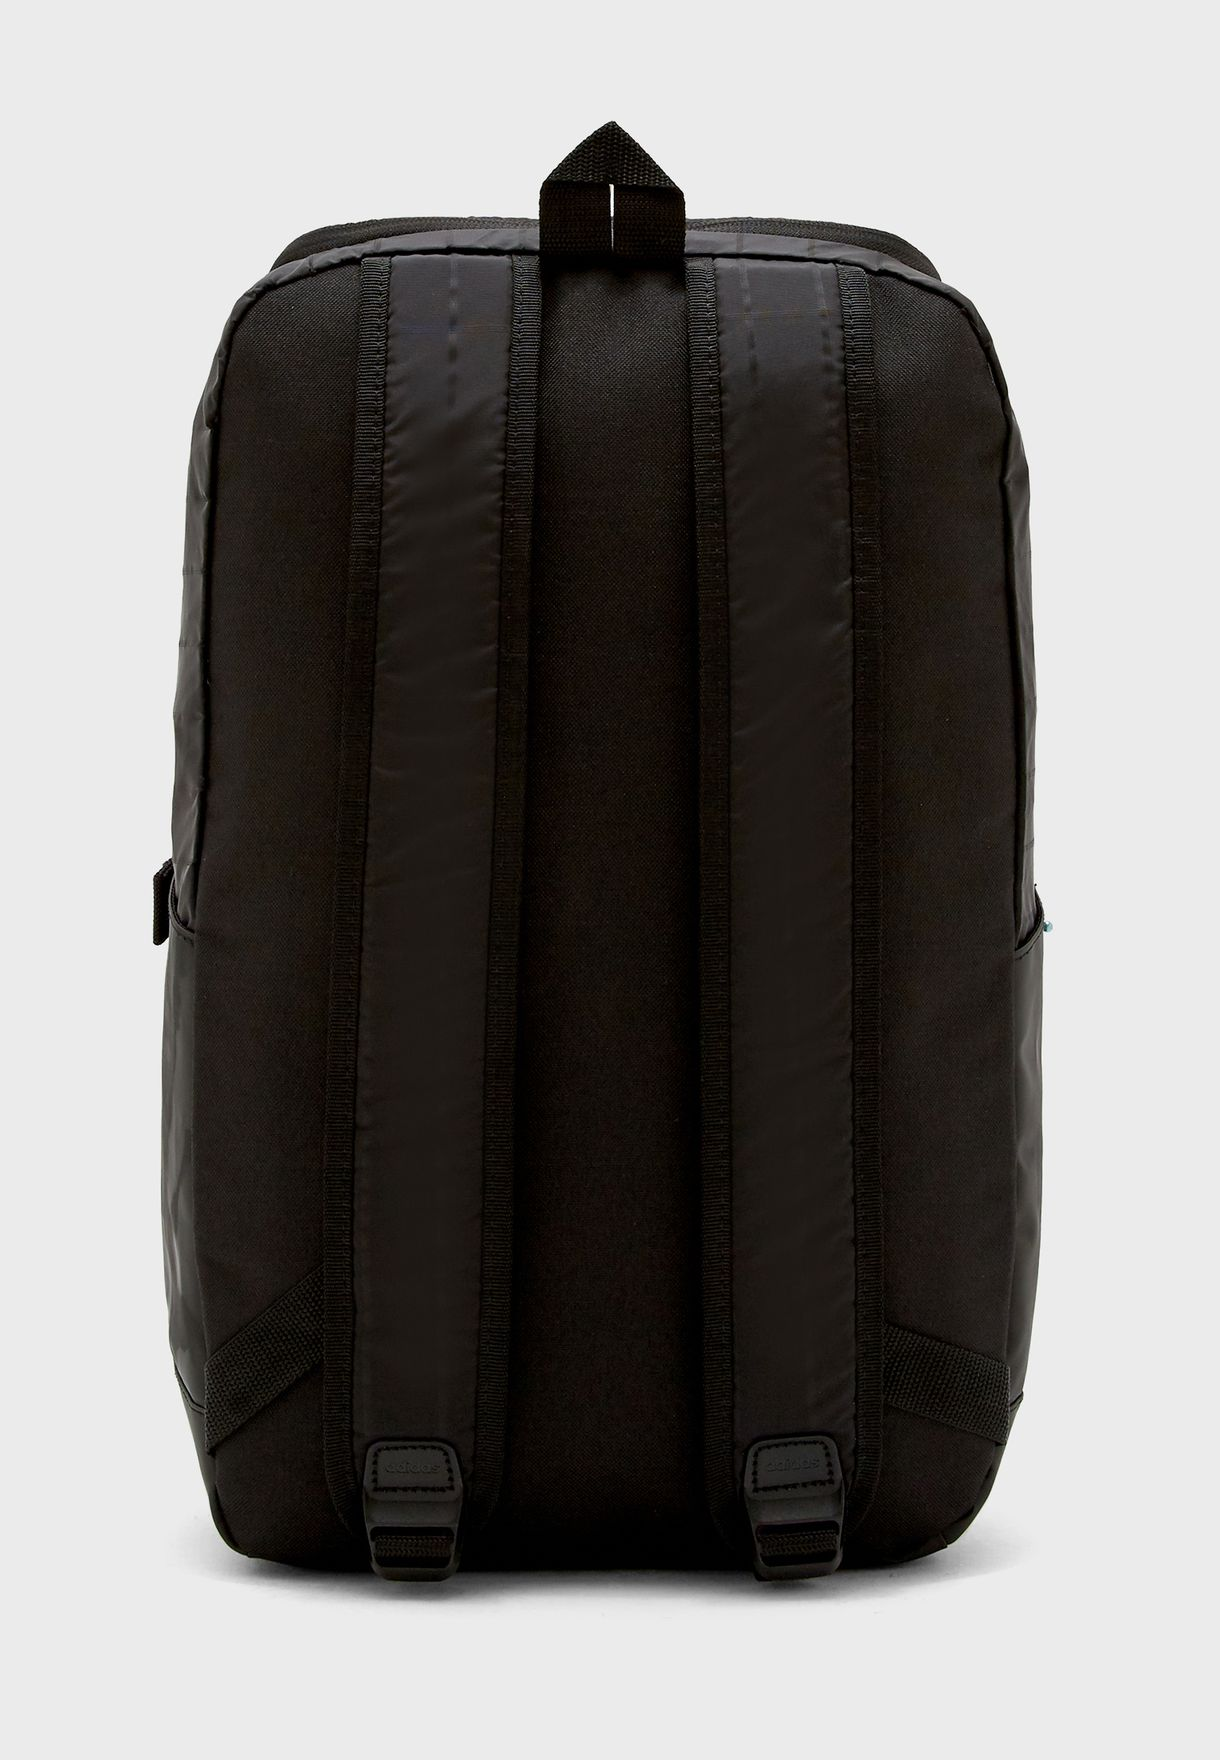 T4H Response Backpack